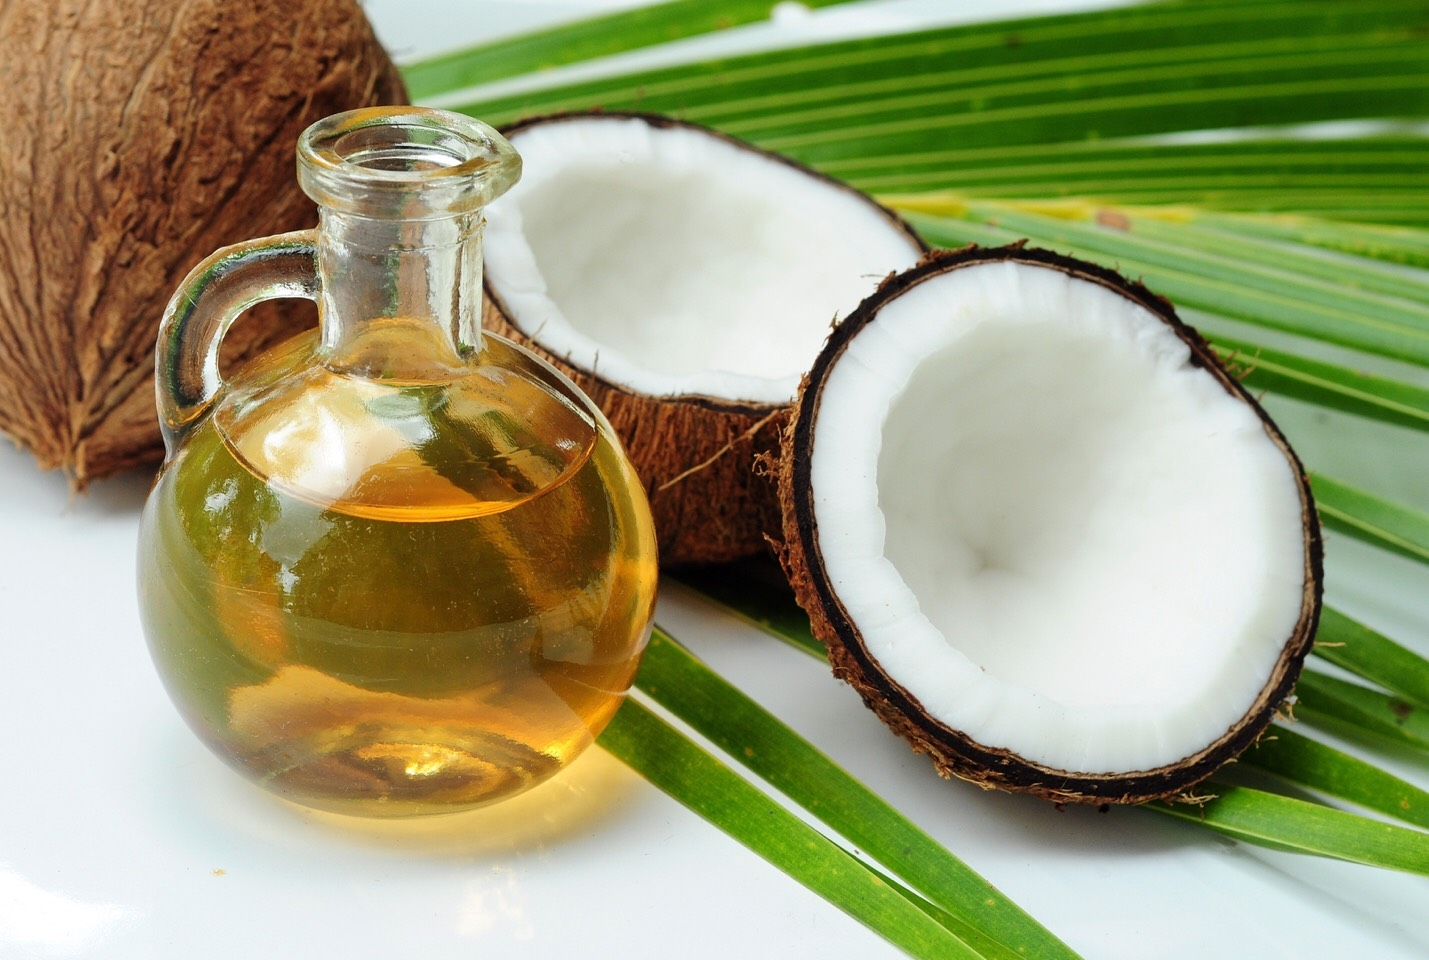 Putting coconut oil in your hair when it is wet will help keep frizz under control. *remember* a little goes a long way!!